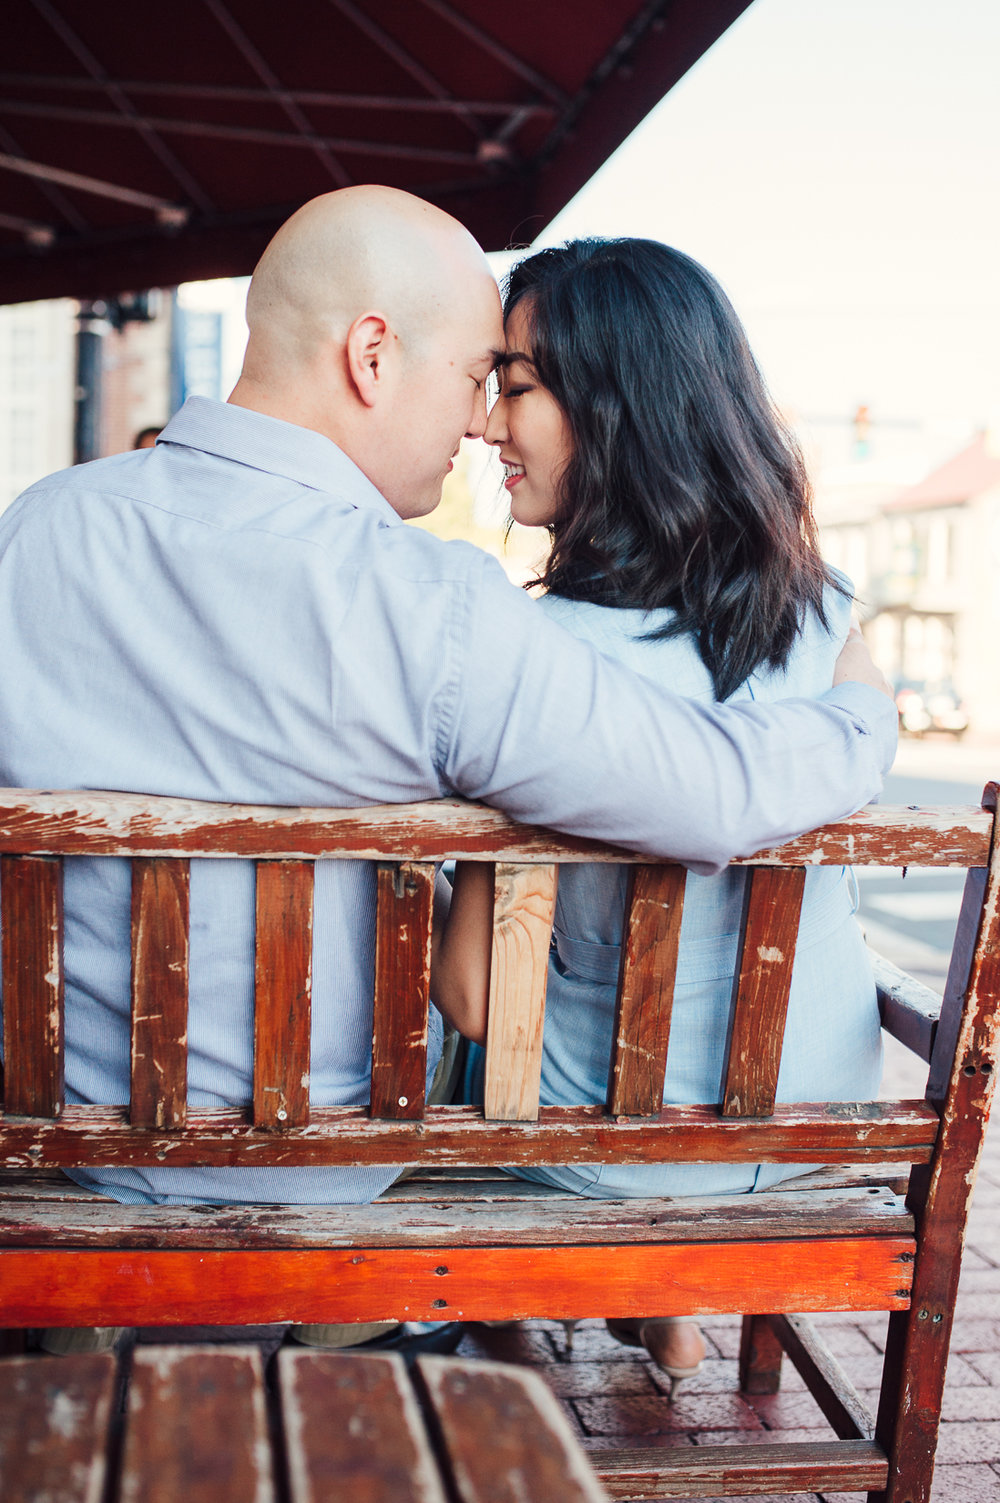 engagement_downtown_fredericksburg_virginiaweddingphotographer_youseephotography_HelenPaul (14).jpg